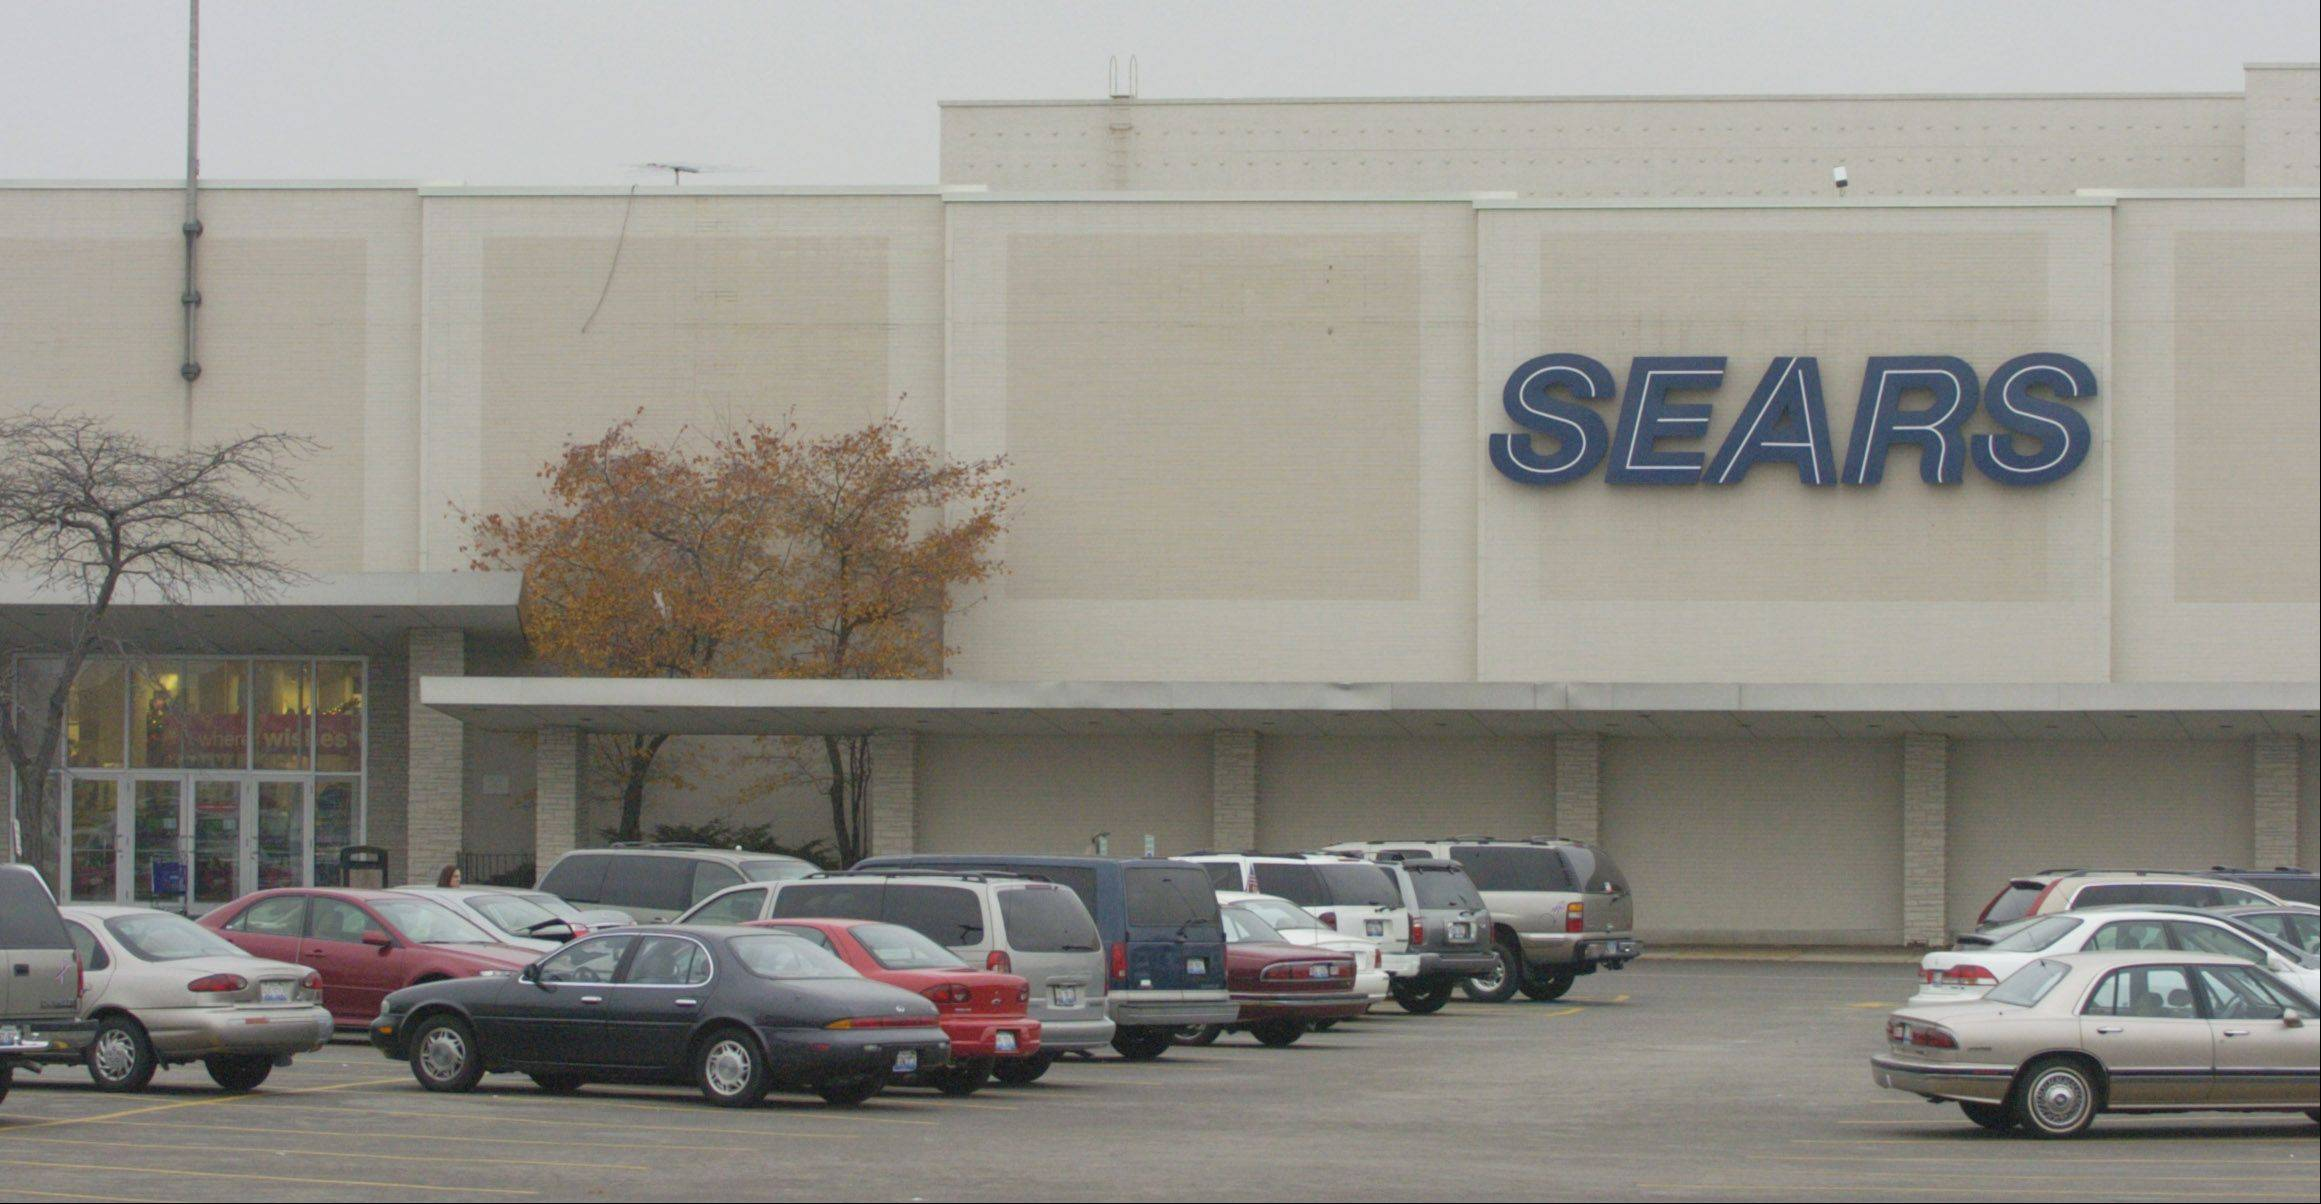 Hoffman Estates-based Sears Holdings announced today that it anticipates hiring 6,500 veterans and military spouses in 2014.